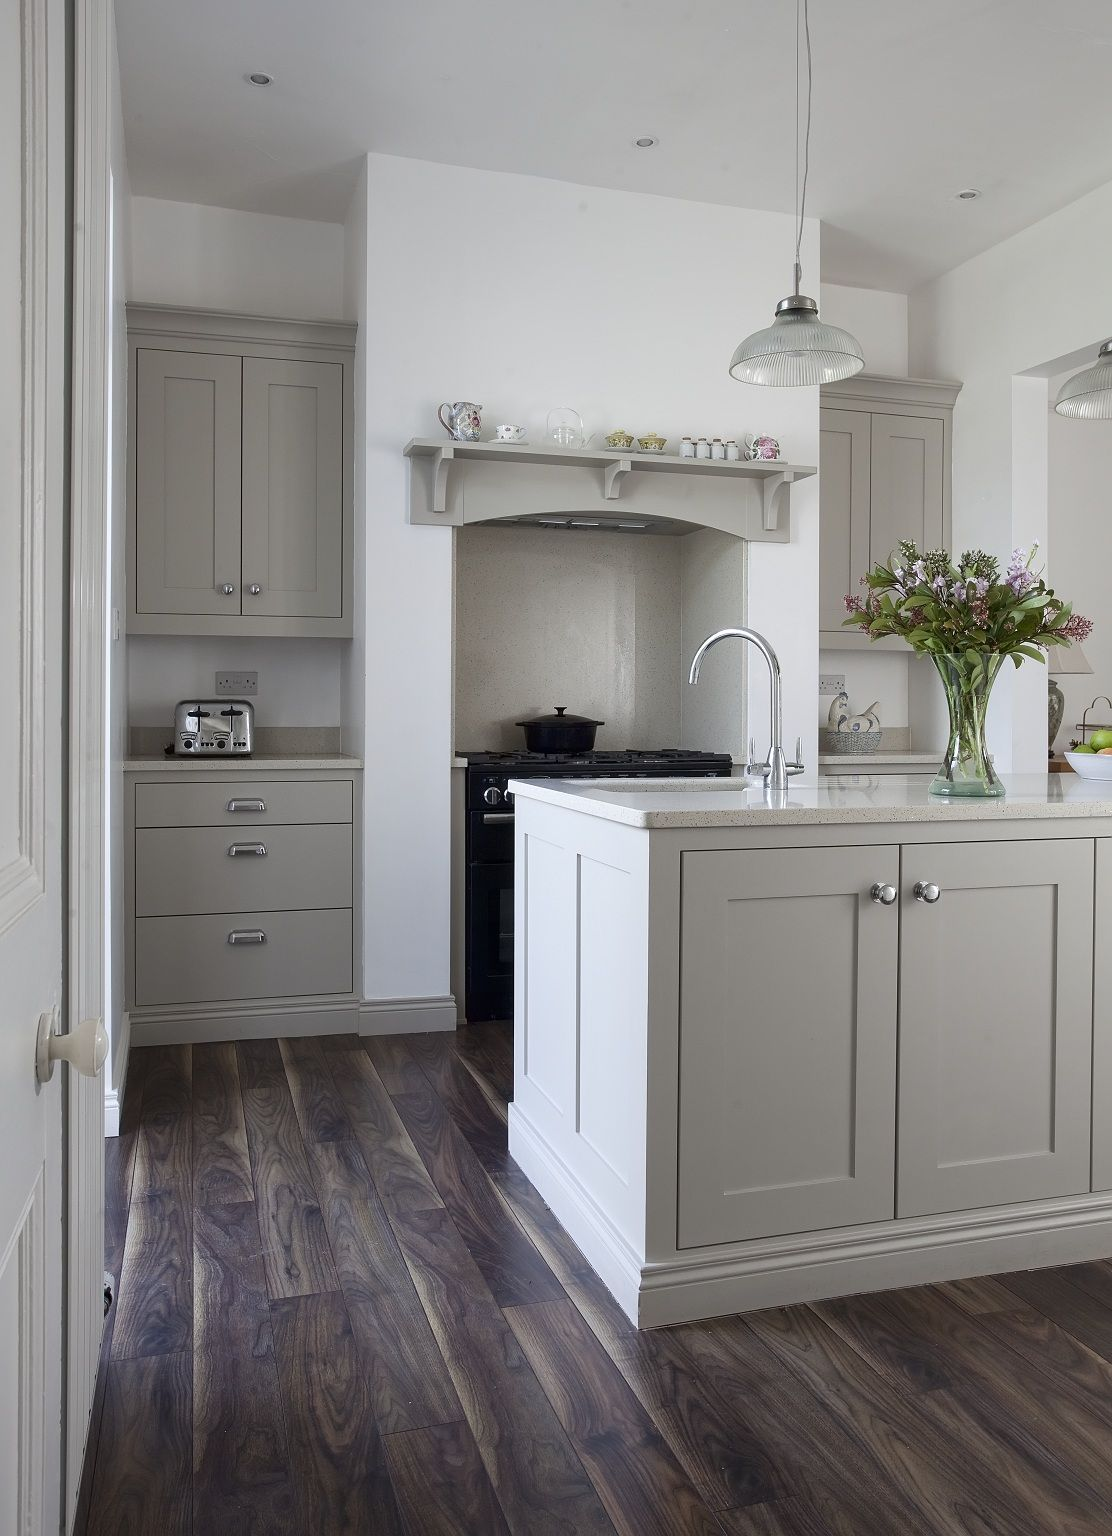 farrow and ball kitchen cabinet colors Colour Study: Farrow and Ball Hardwick White | Kitchen